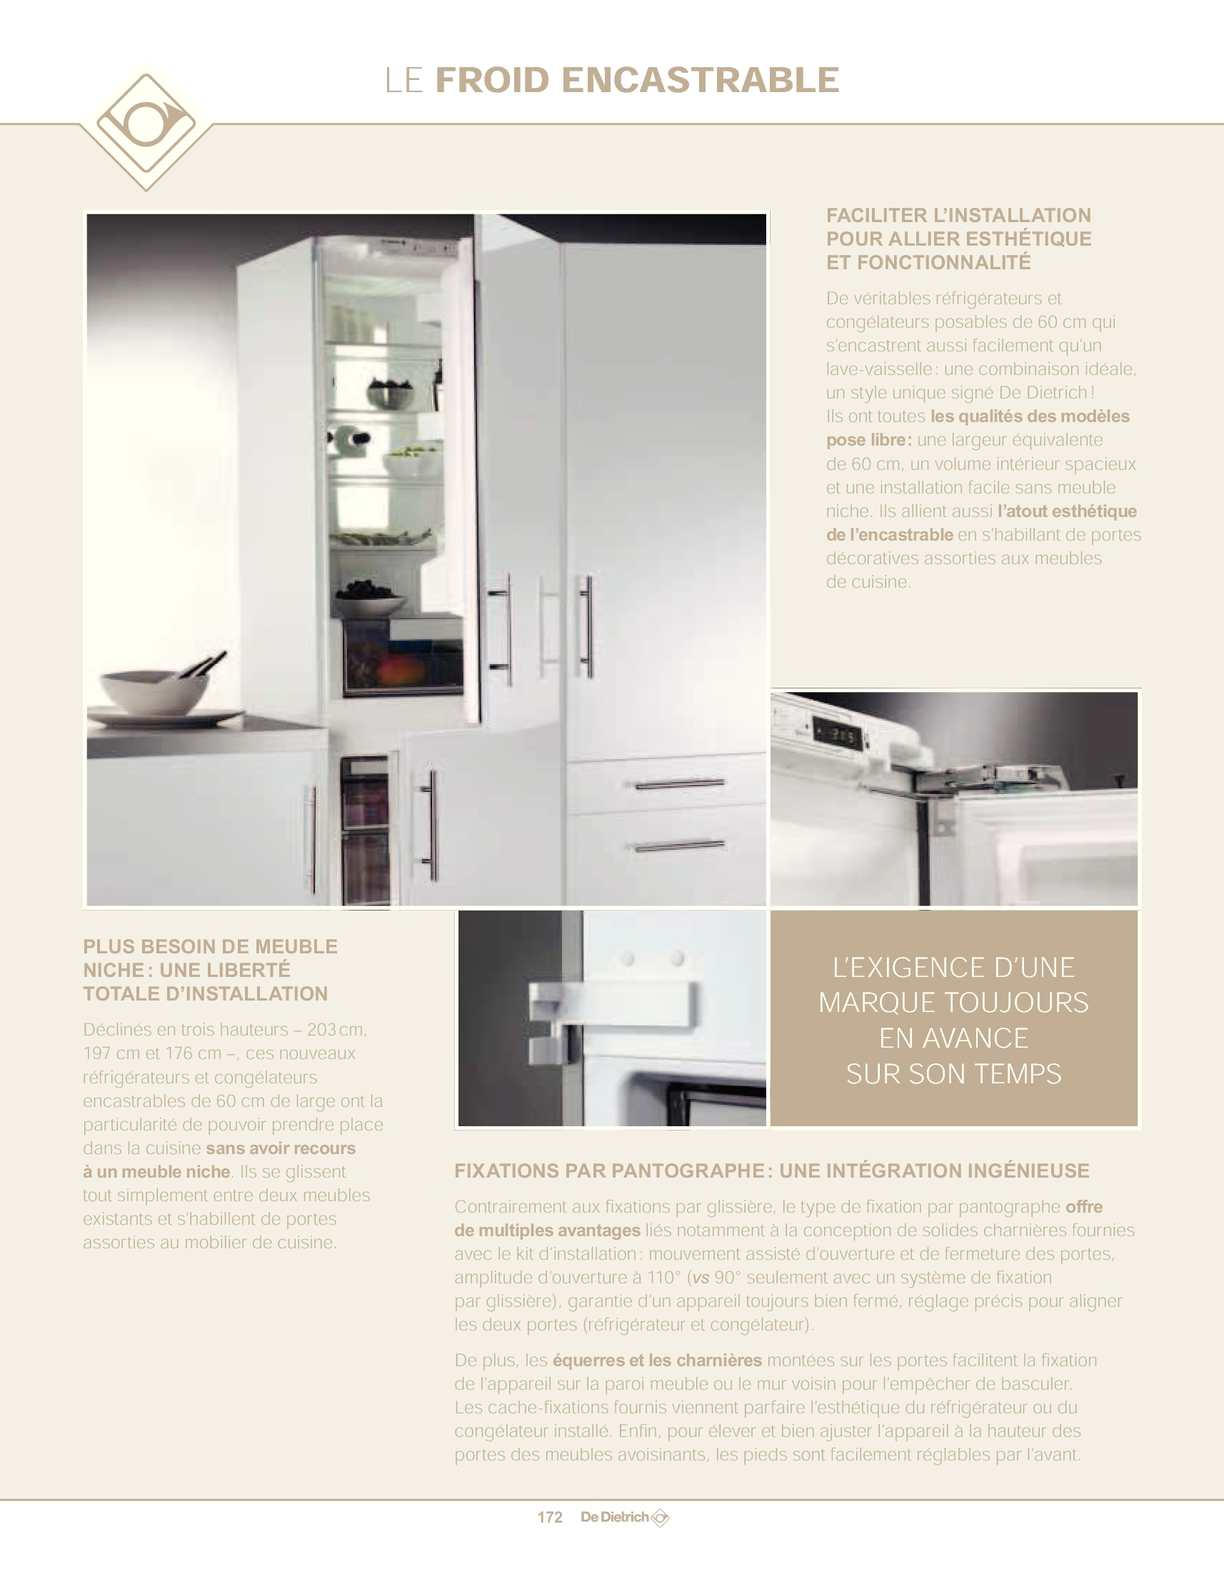 Calam o catalogue froid de dietrich for Installer un frigo encastrable